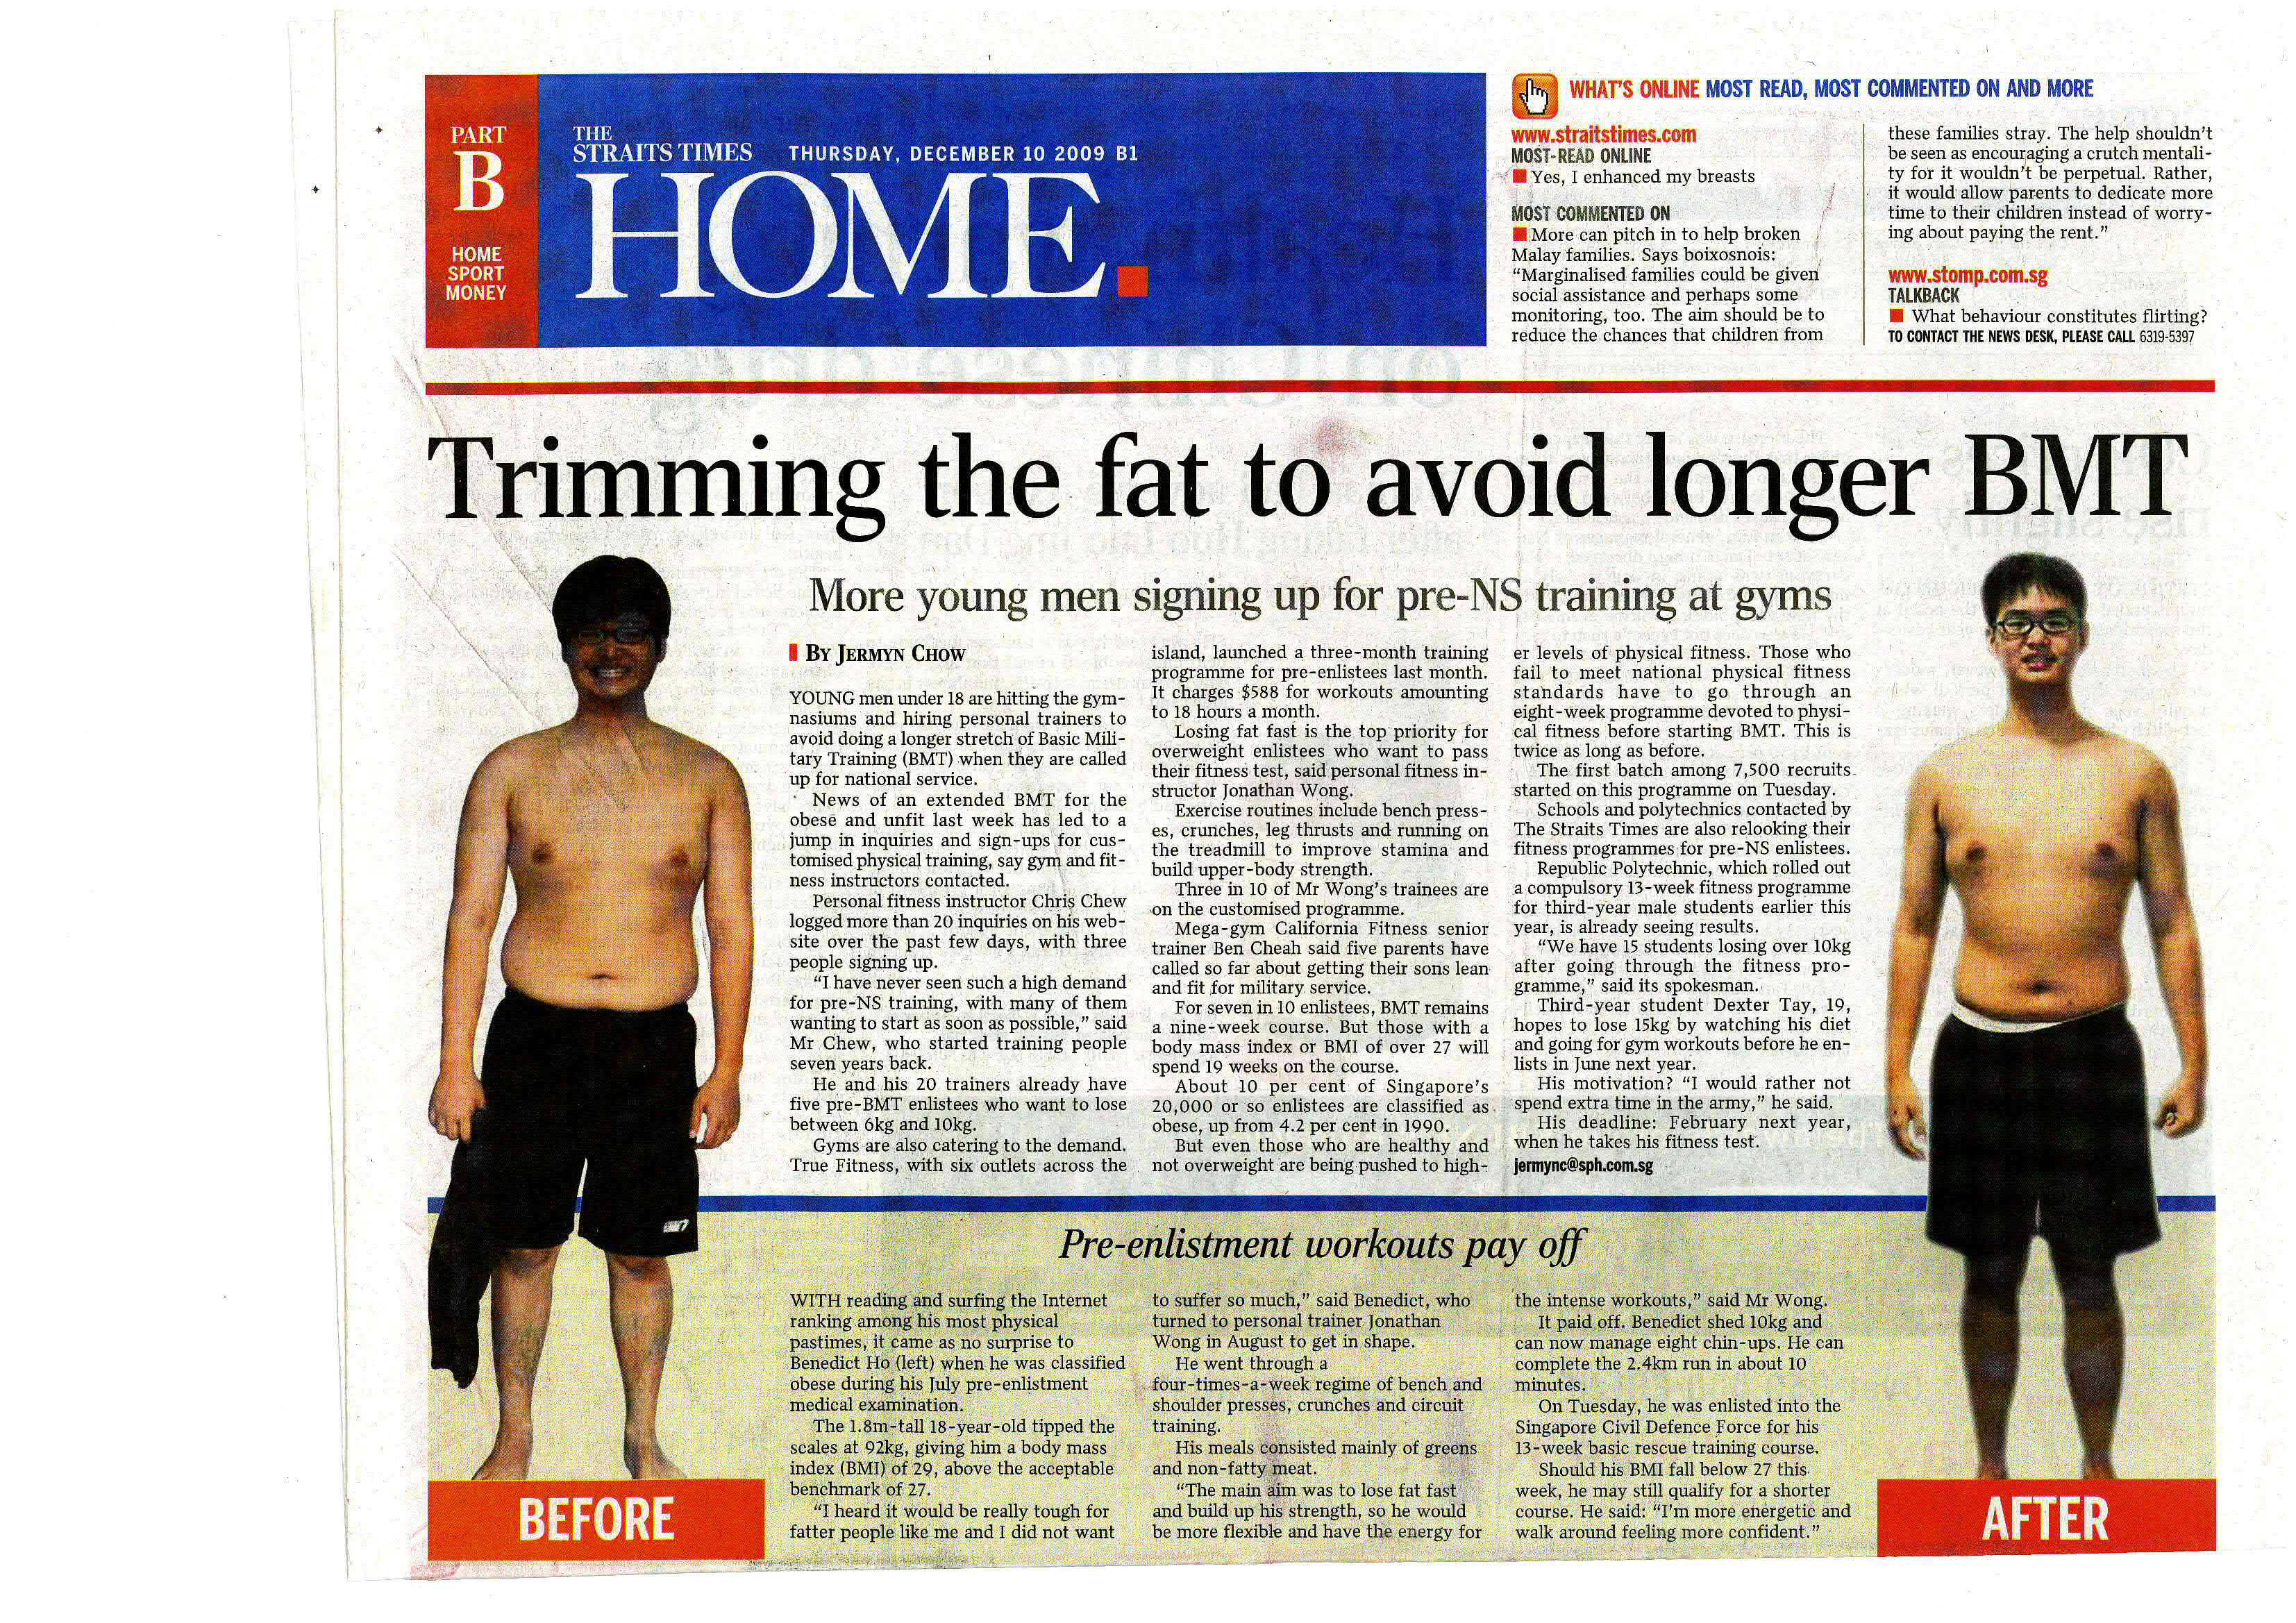 The STRAITS TIMES Article: Trimming the fat to avoid longer BMT.